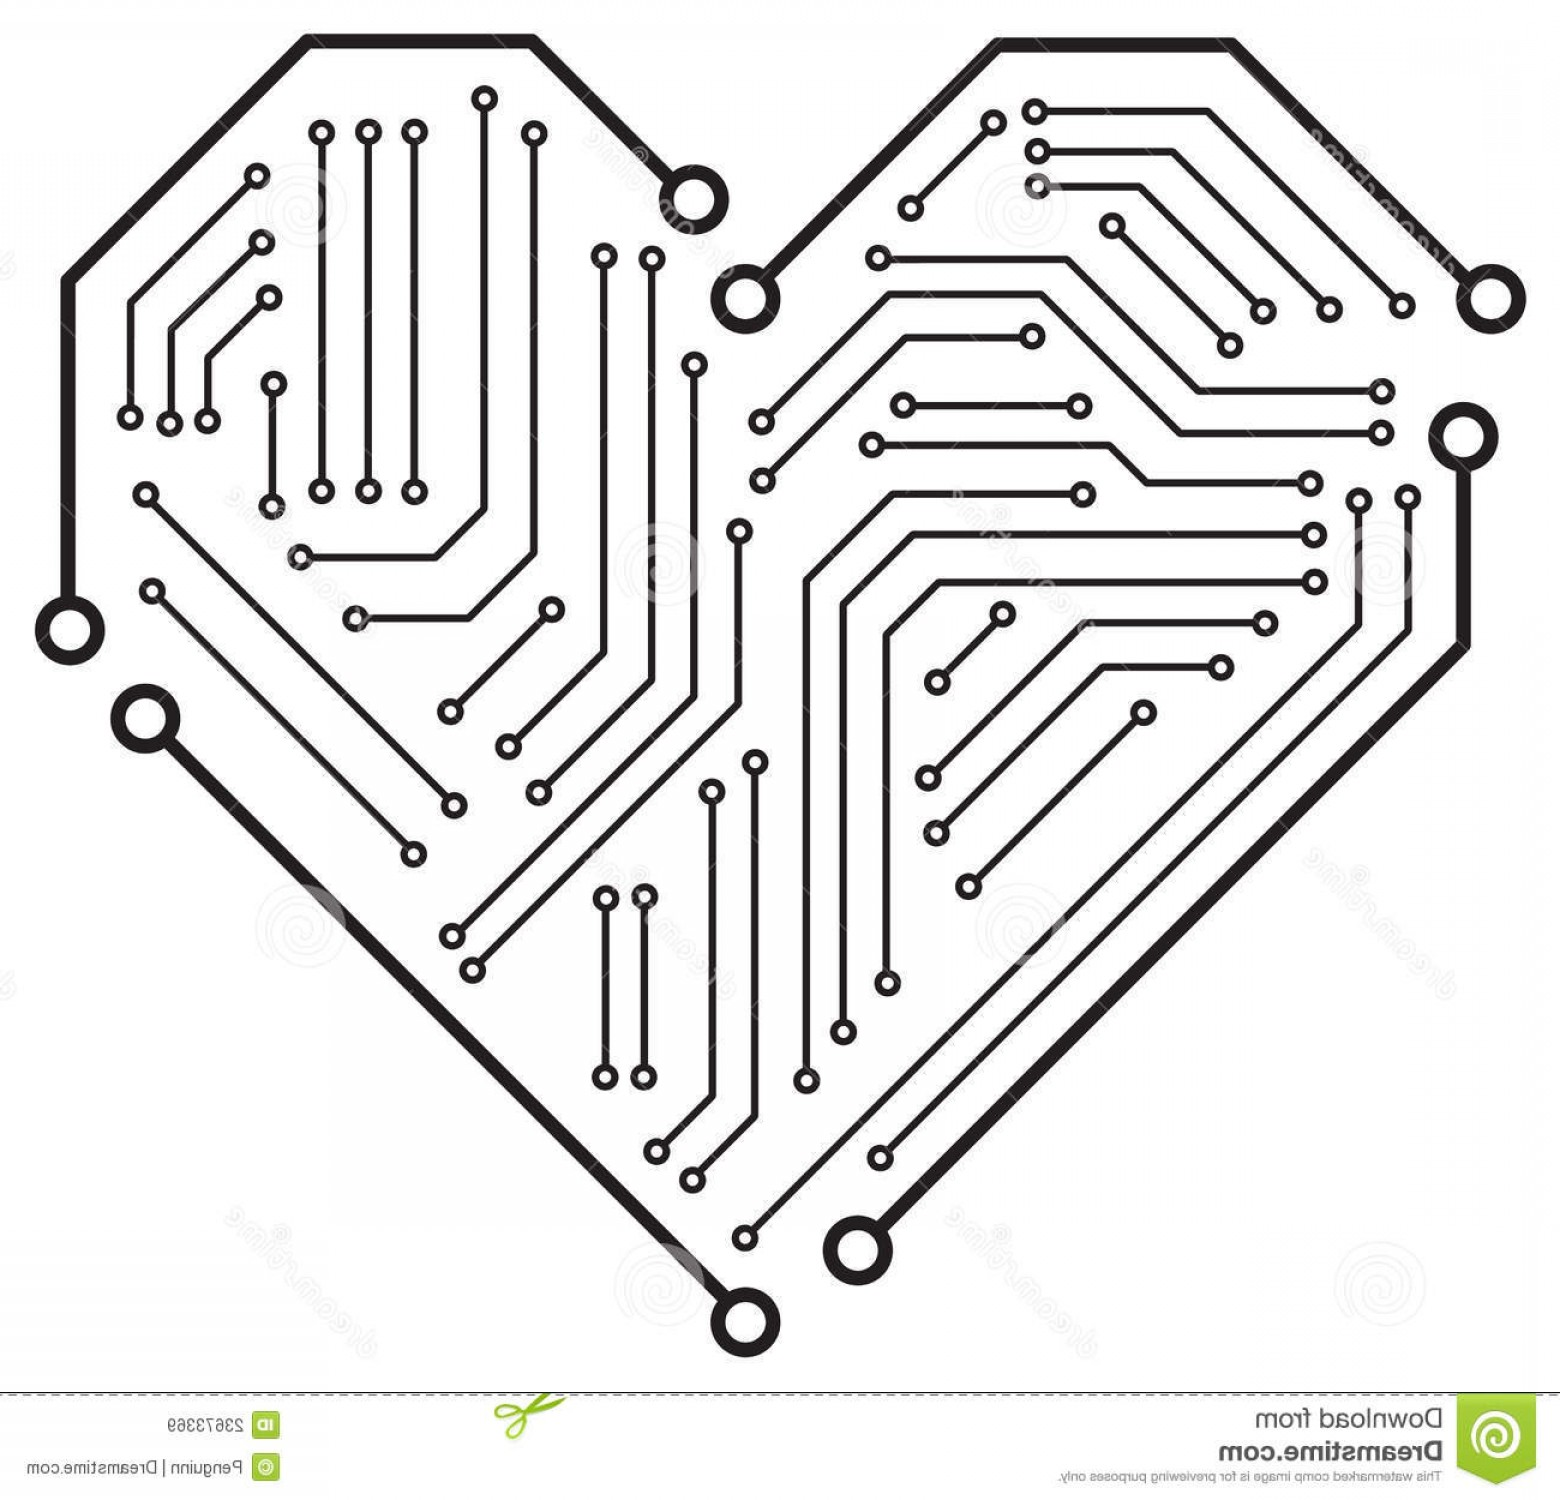 Motherboard Vector With A Heart: Royalty Free Stock Images Heart Motherboard Image